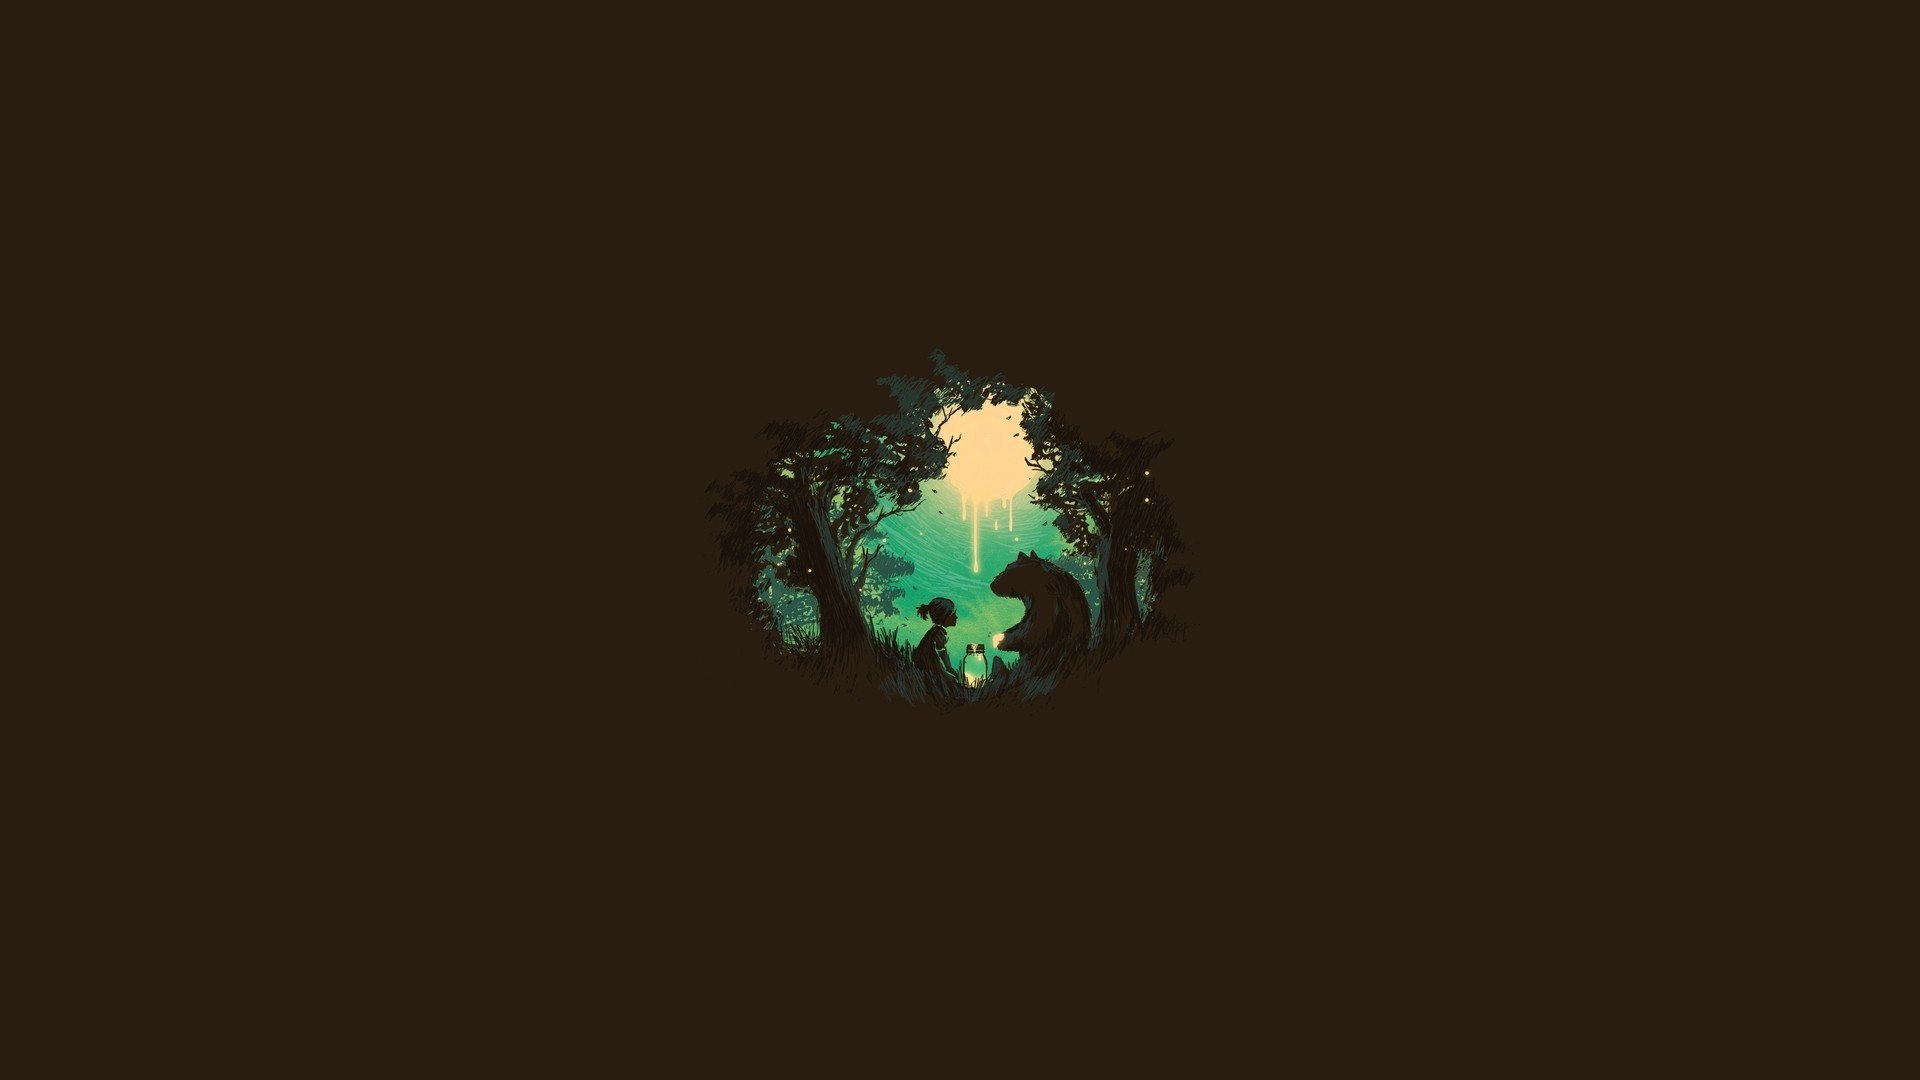 Hunting Iphone Wallpaper Disney Minimalist Wallpaper 77 Images